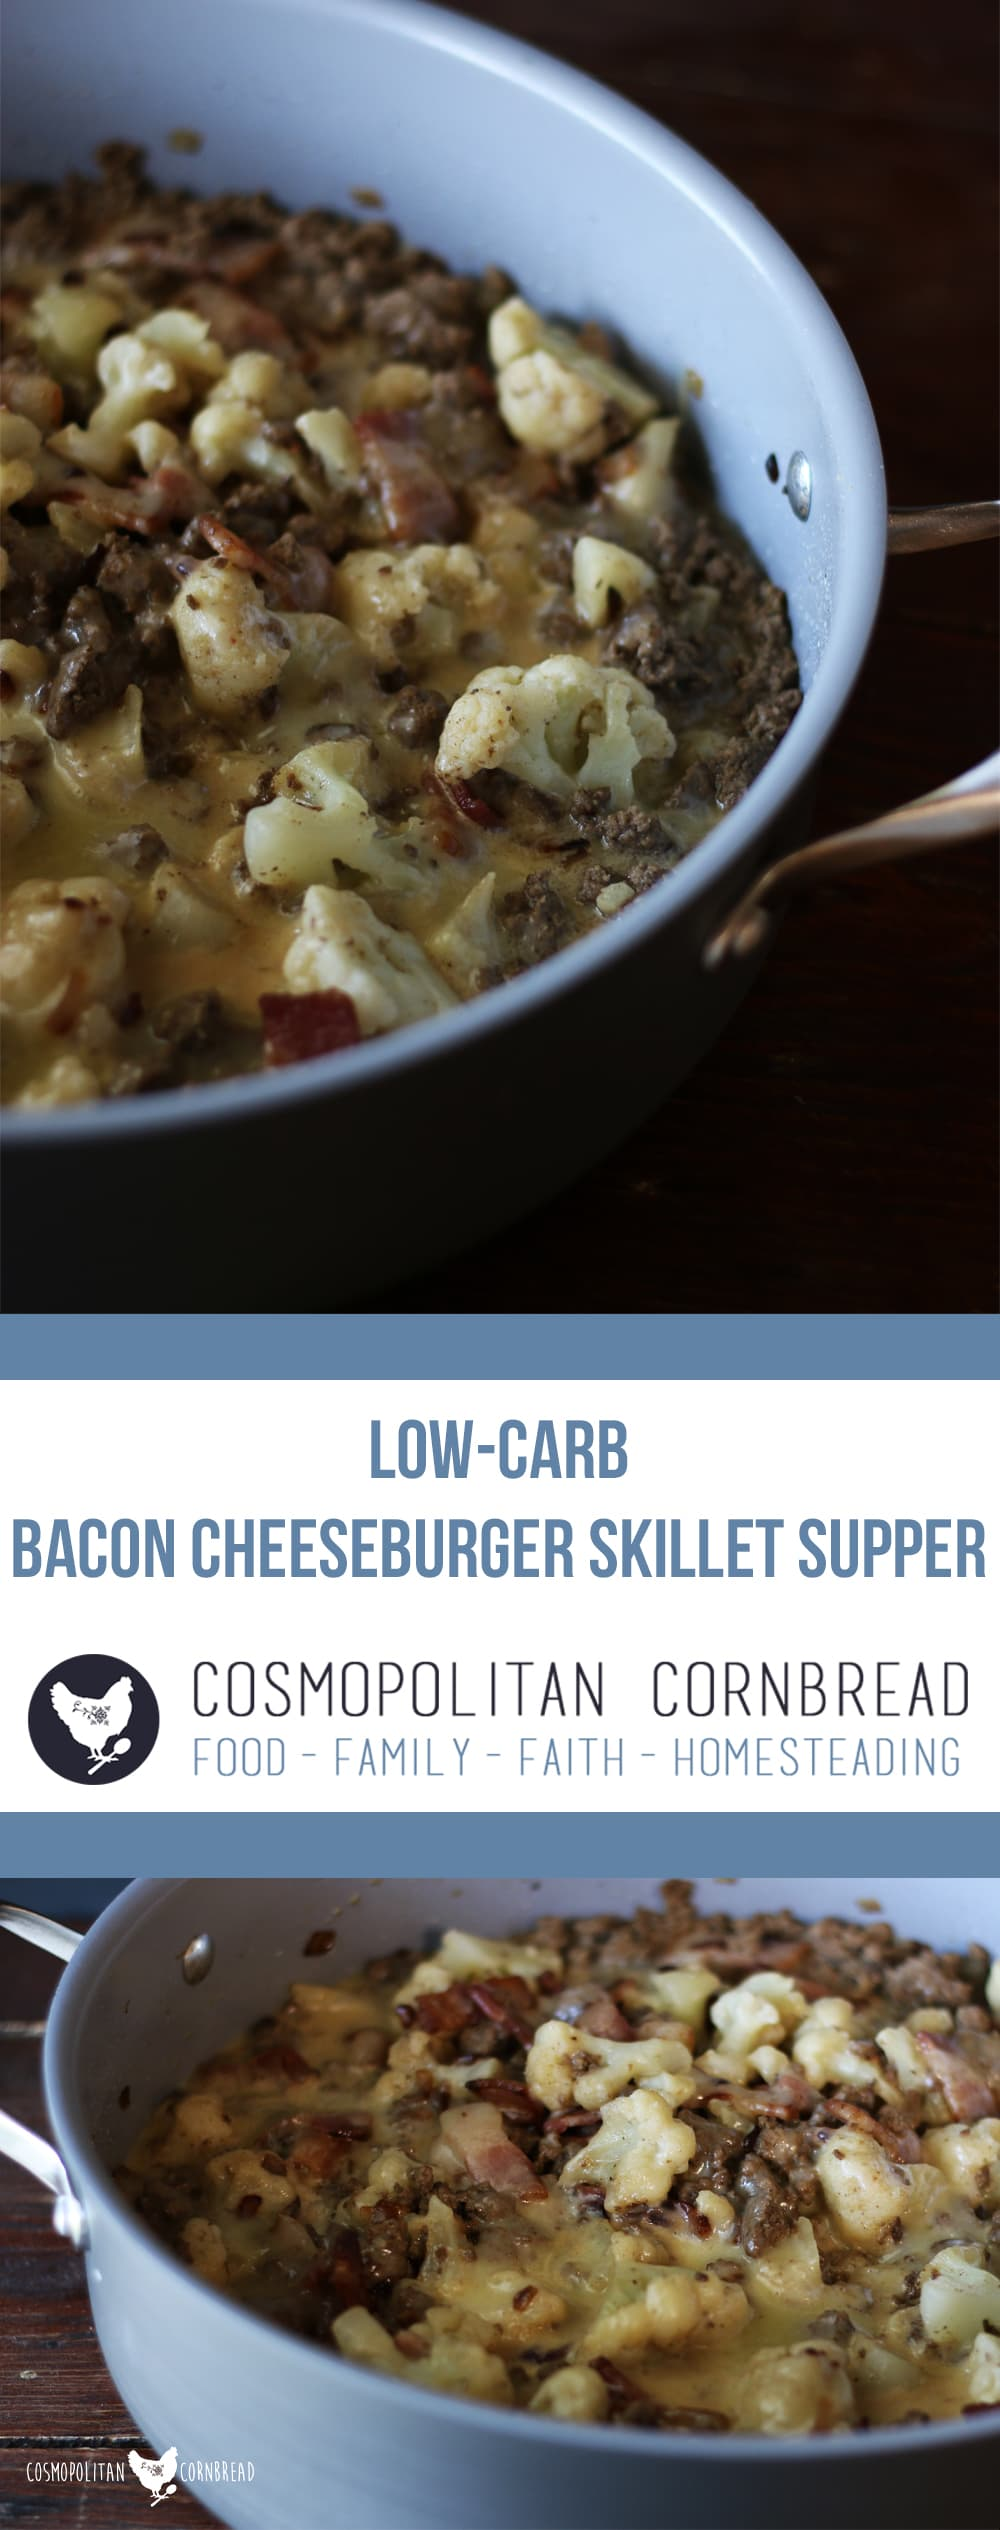 This Bacon Cheeseburger Skillet Supper is not only a delicious one pot meal, but it is also a low-carb supper anyone will love. Get the recipe from Cosmopolitan Cornbread.